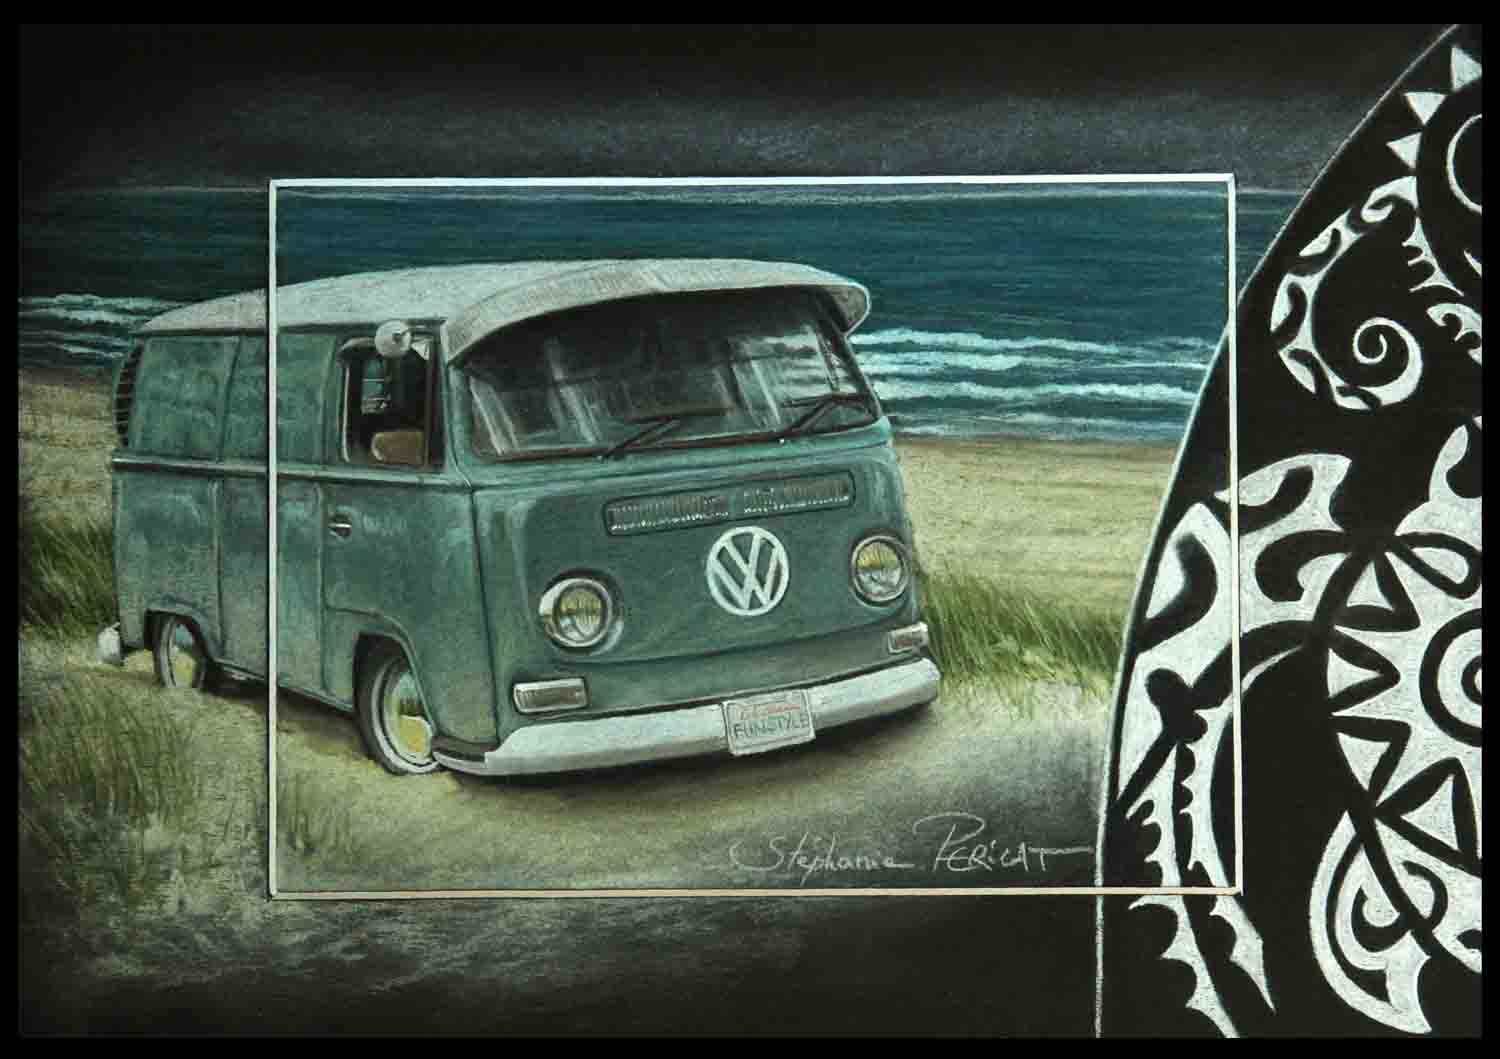 On the Beach, Combi VW - 20x30 cm - AV for sale